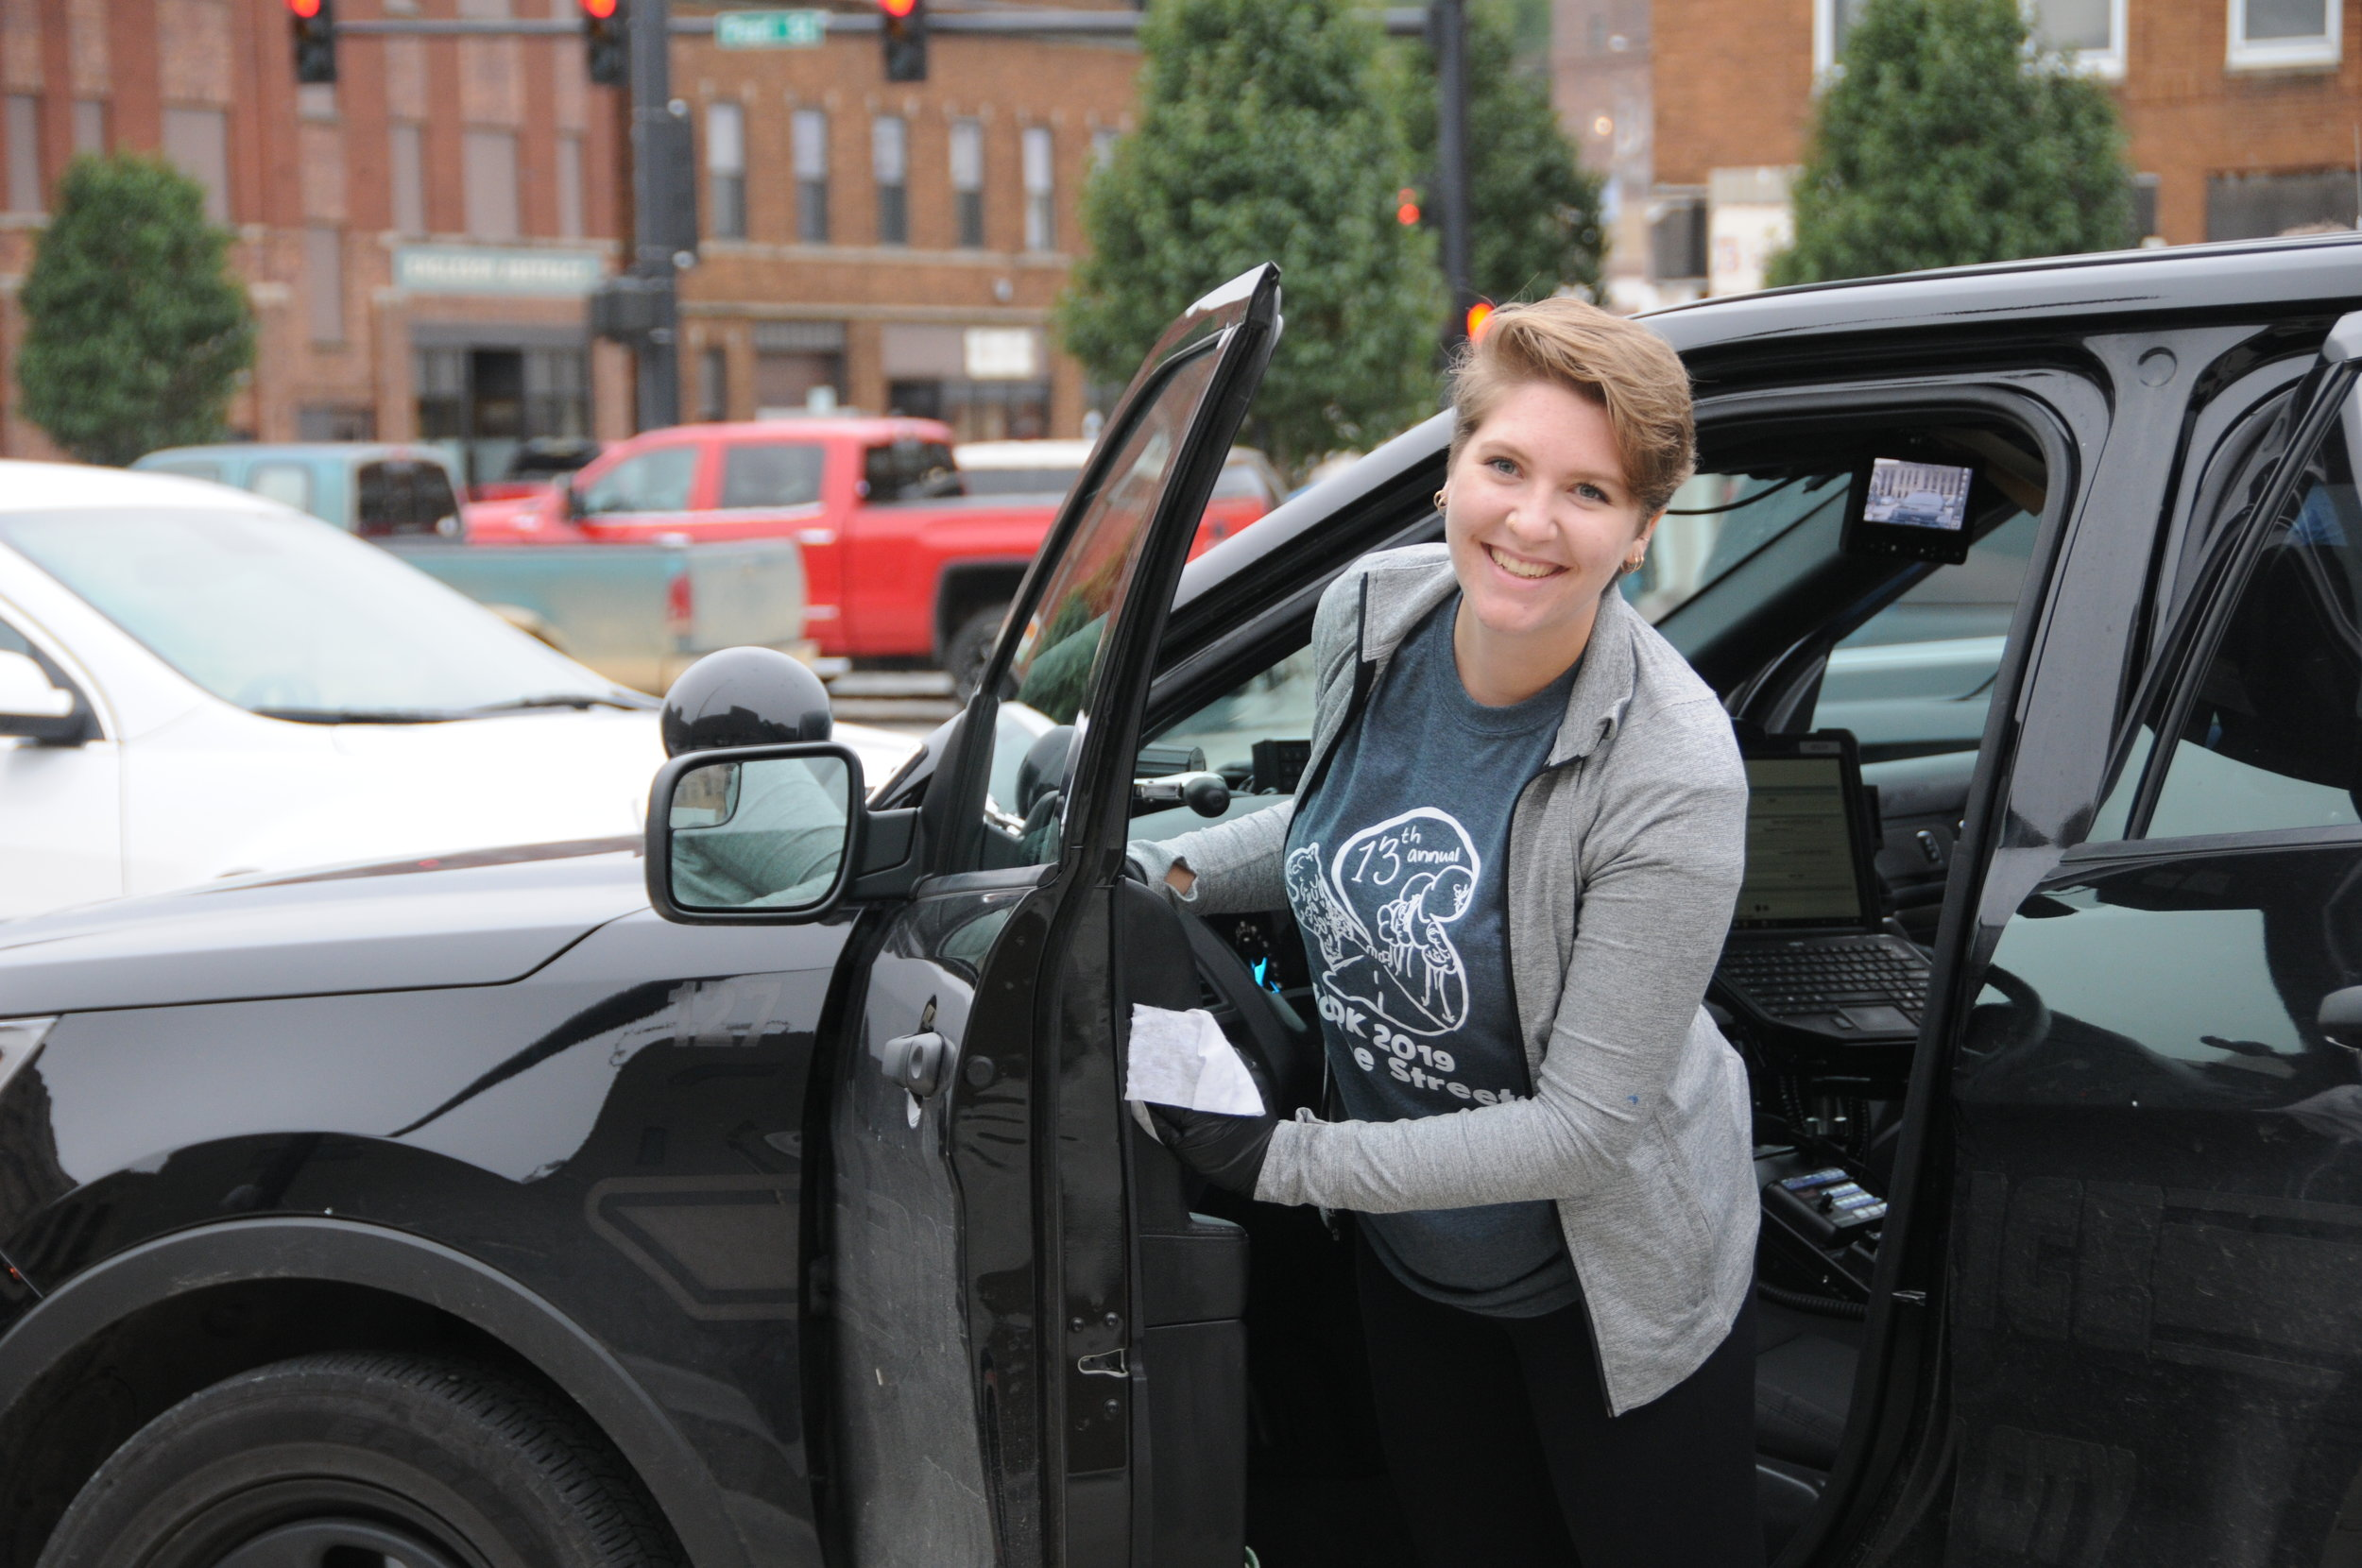 Kailyn Roberts, a senior at Morningside College and student president of the Morningside Civic Union, helps clean a patrol car at the police department on Oct. 2. The students volunteered their time as part of Morningside College's Into the Streets annual volunteer project.